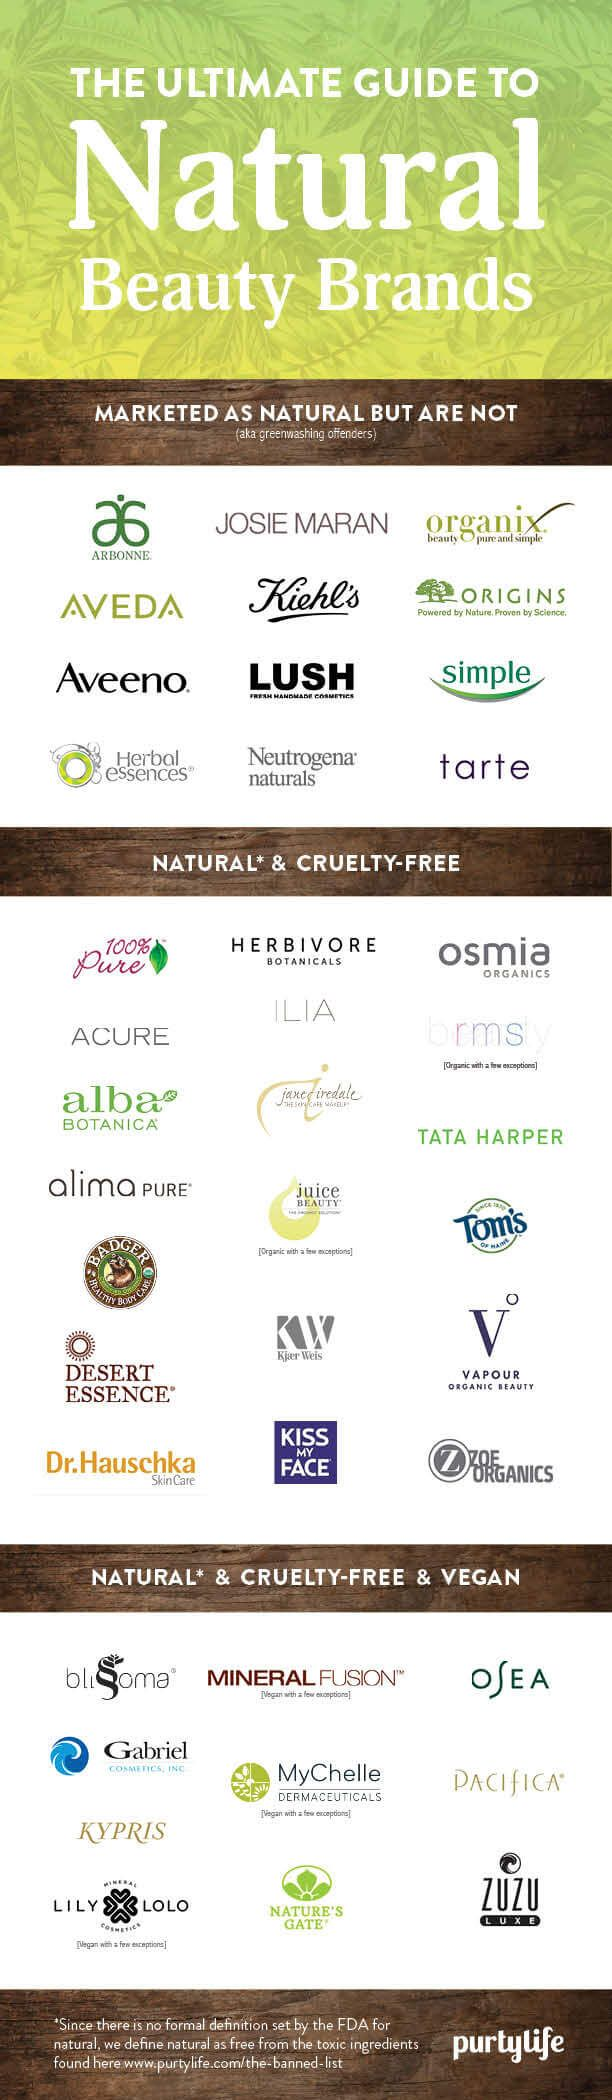 The Ultimate Guide to the Natural, Organic and Vegan Beauty Brands | Discover Non-Toxic, Chemical-Free Makeup & Skincare // www.purtylife.com... www.addisonrenee.com | Jaey Skin Care products - http://amzn.to/2iSUZHs